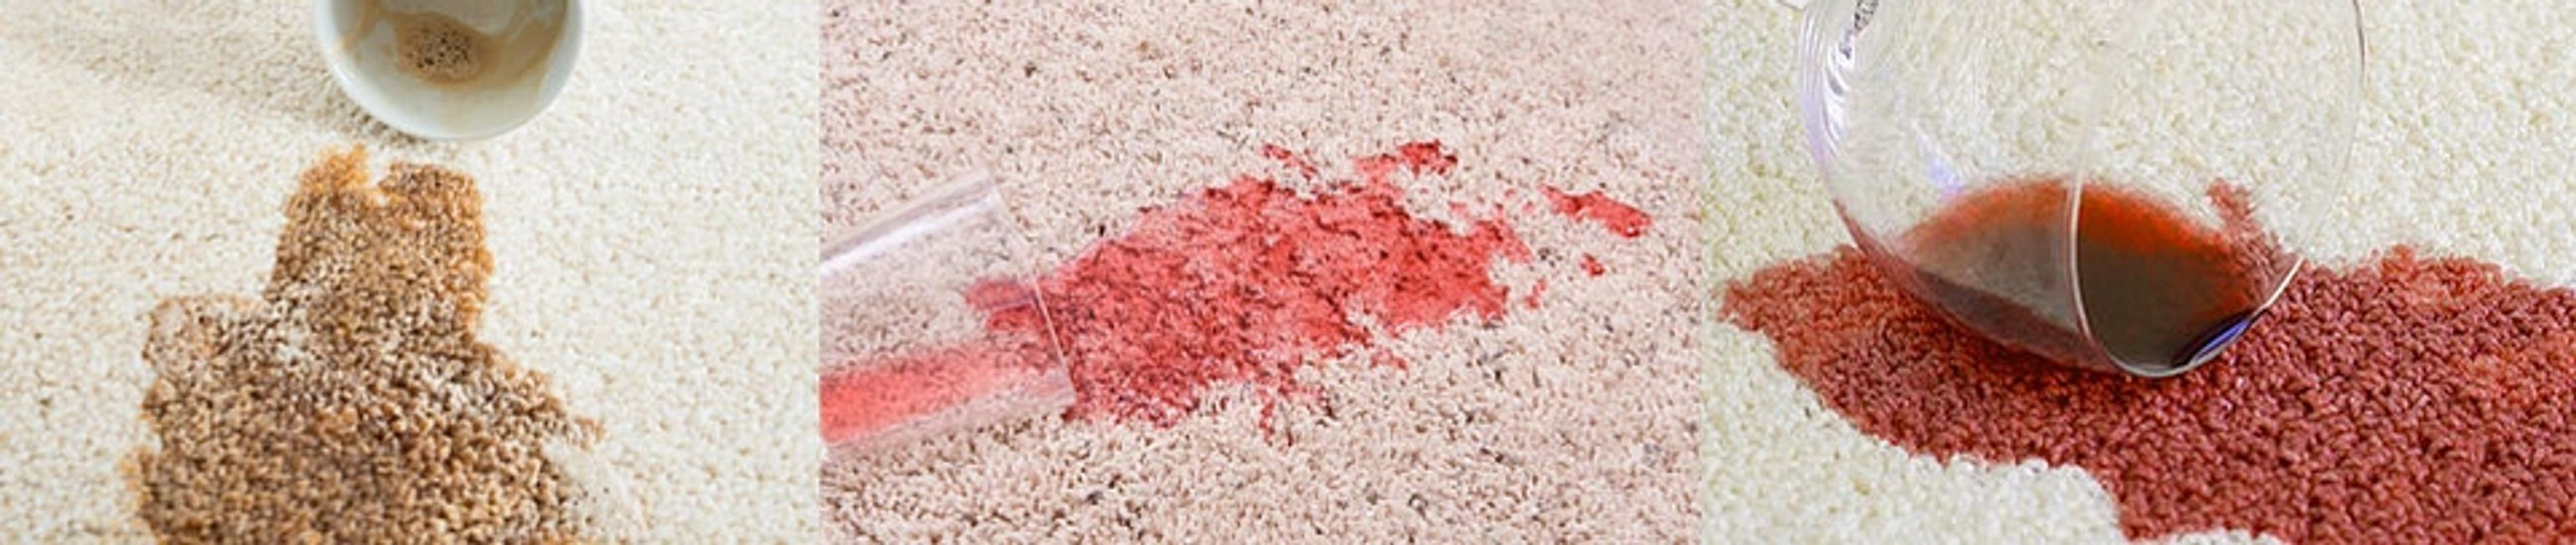 Stain Removal Services for Carpet and Upholstery - Call Adelaide Professional Cleaning Services on 0435 585 136